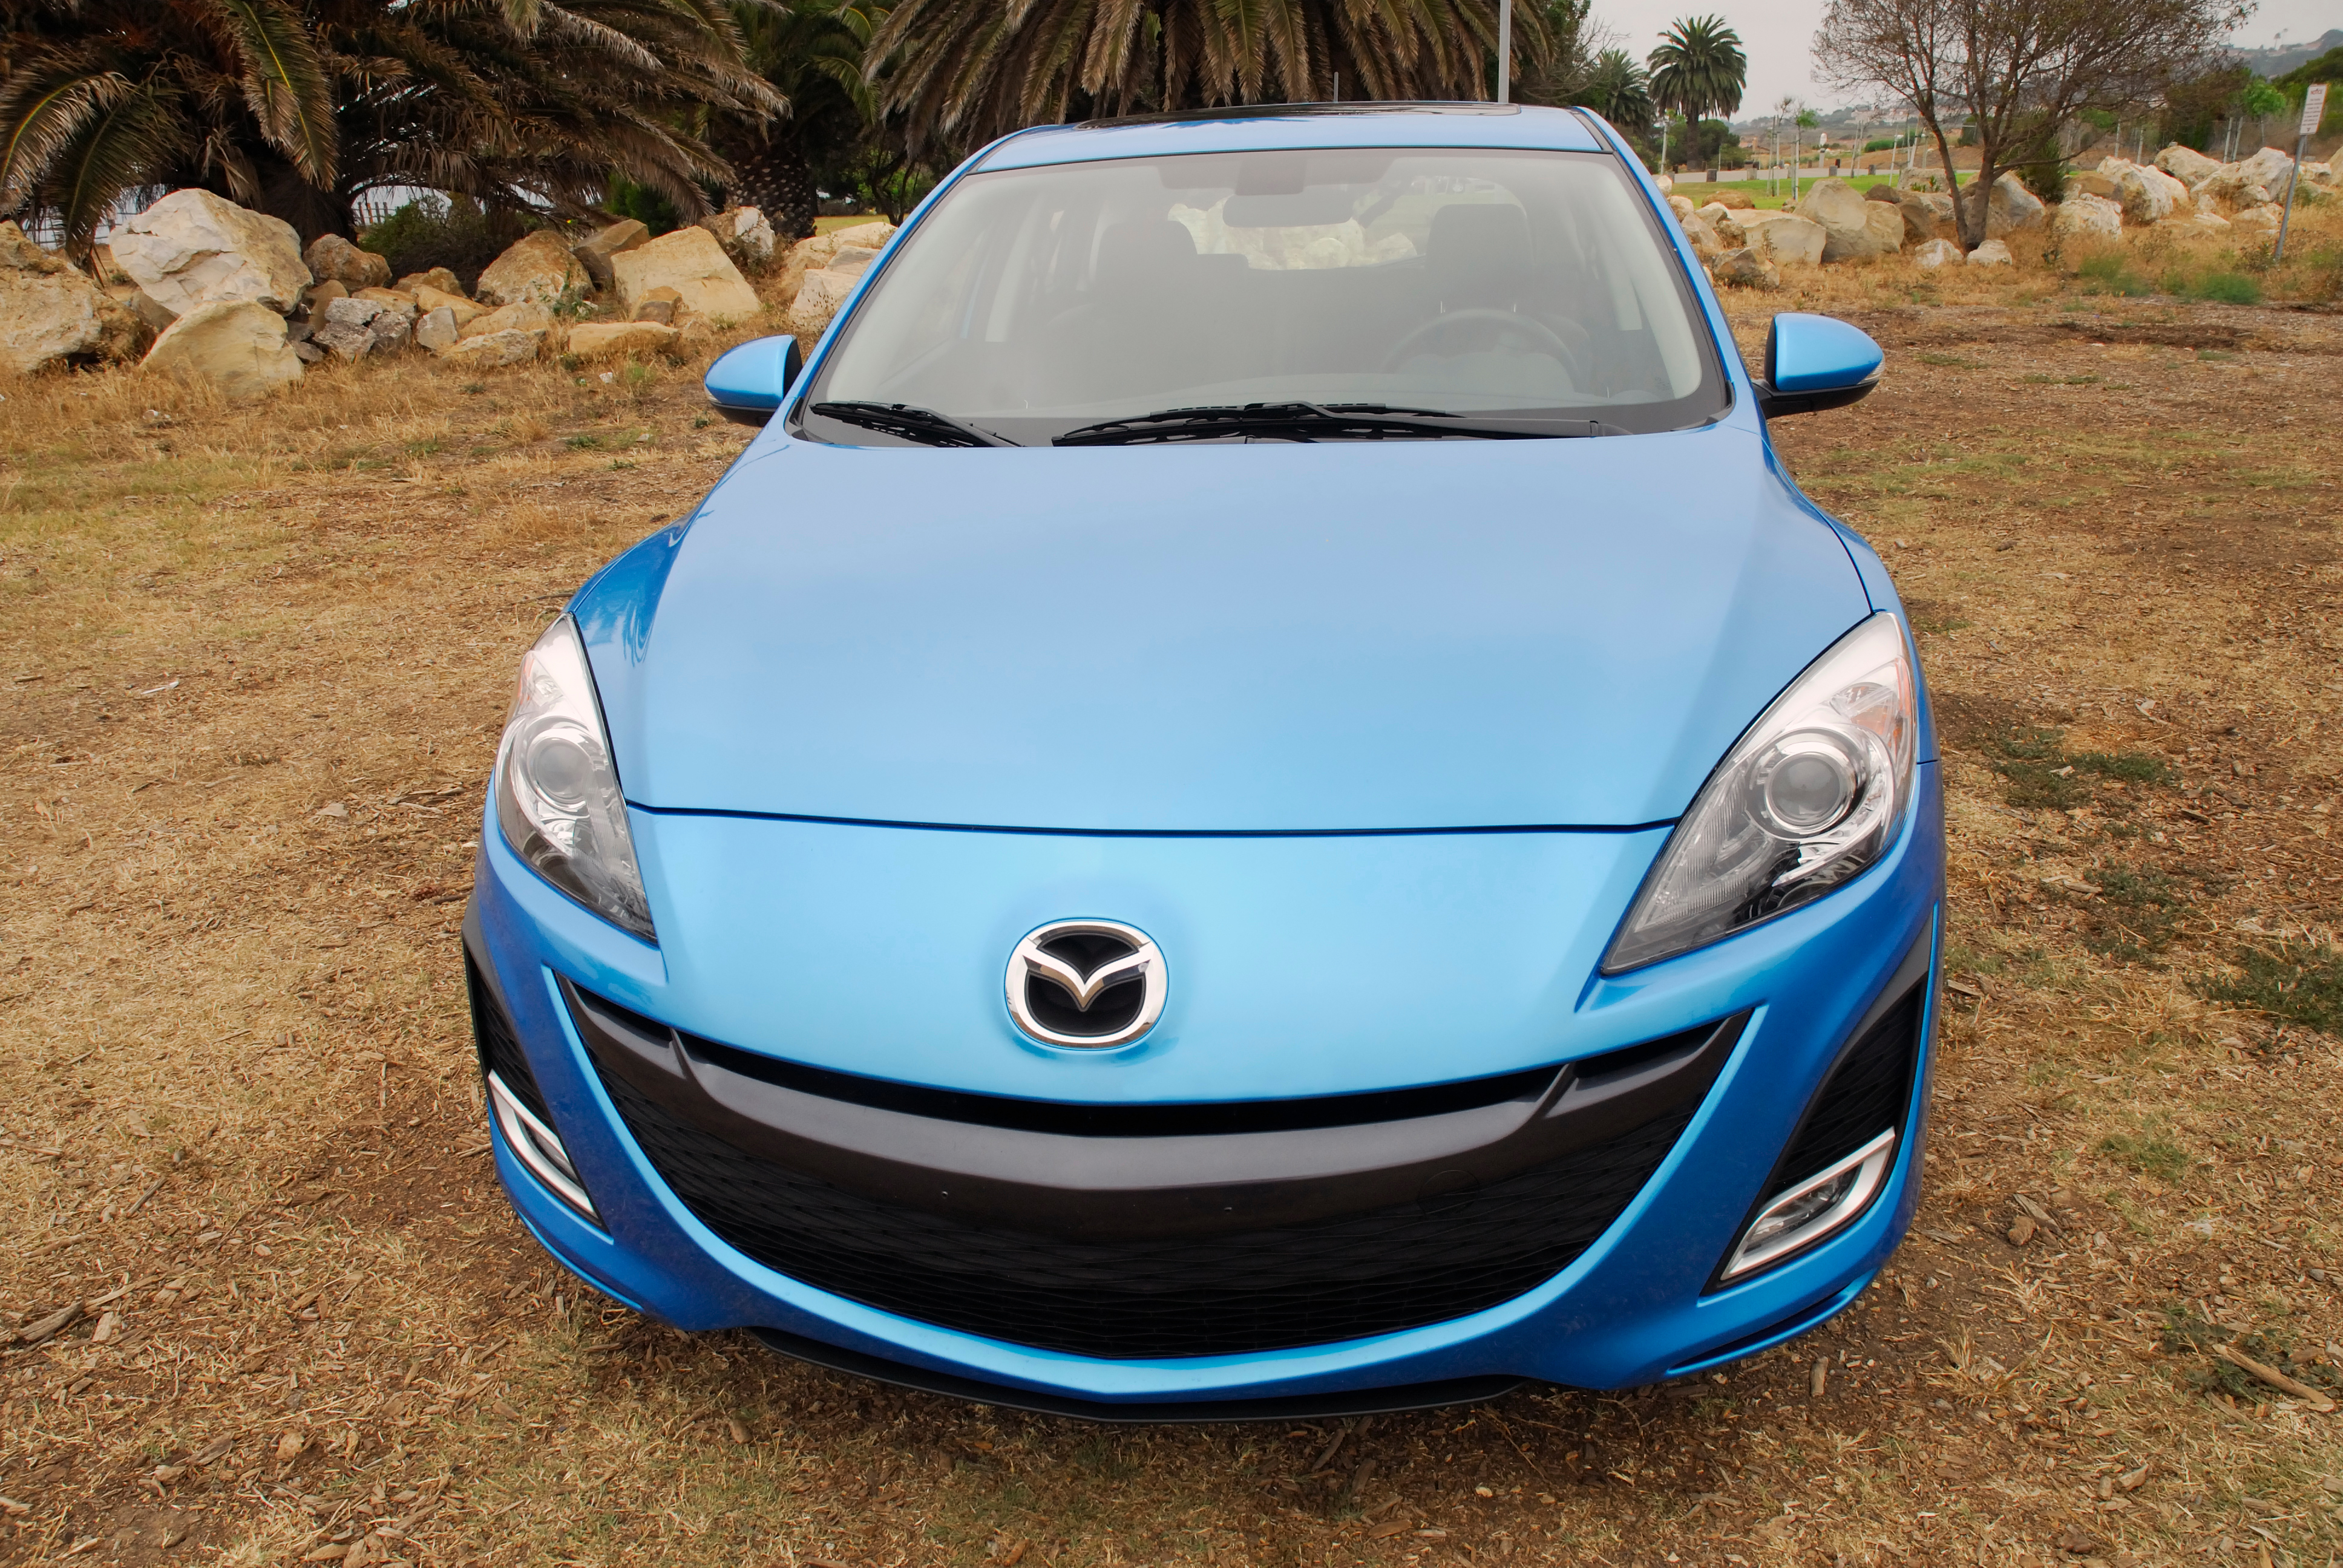 which positioning should mazda adopt for